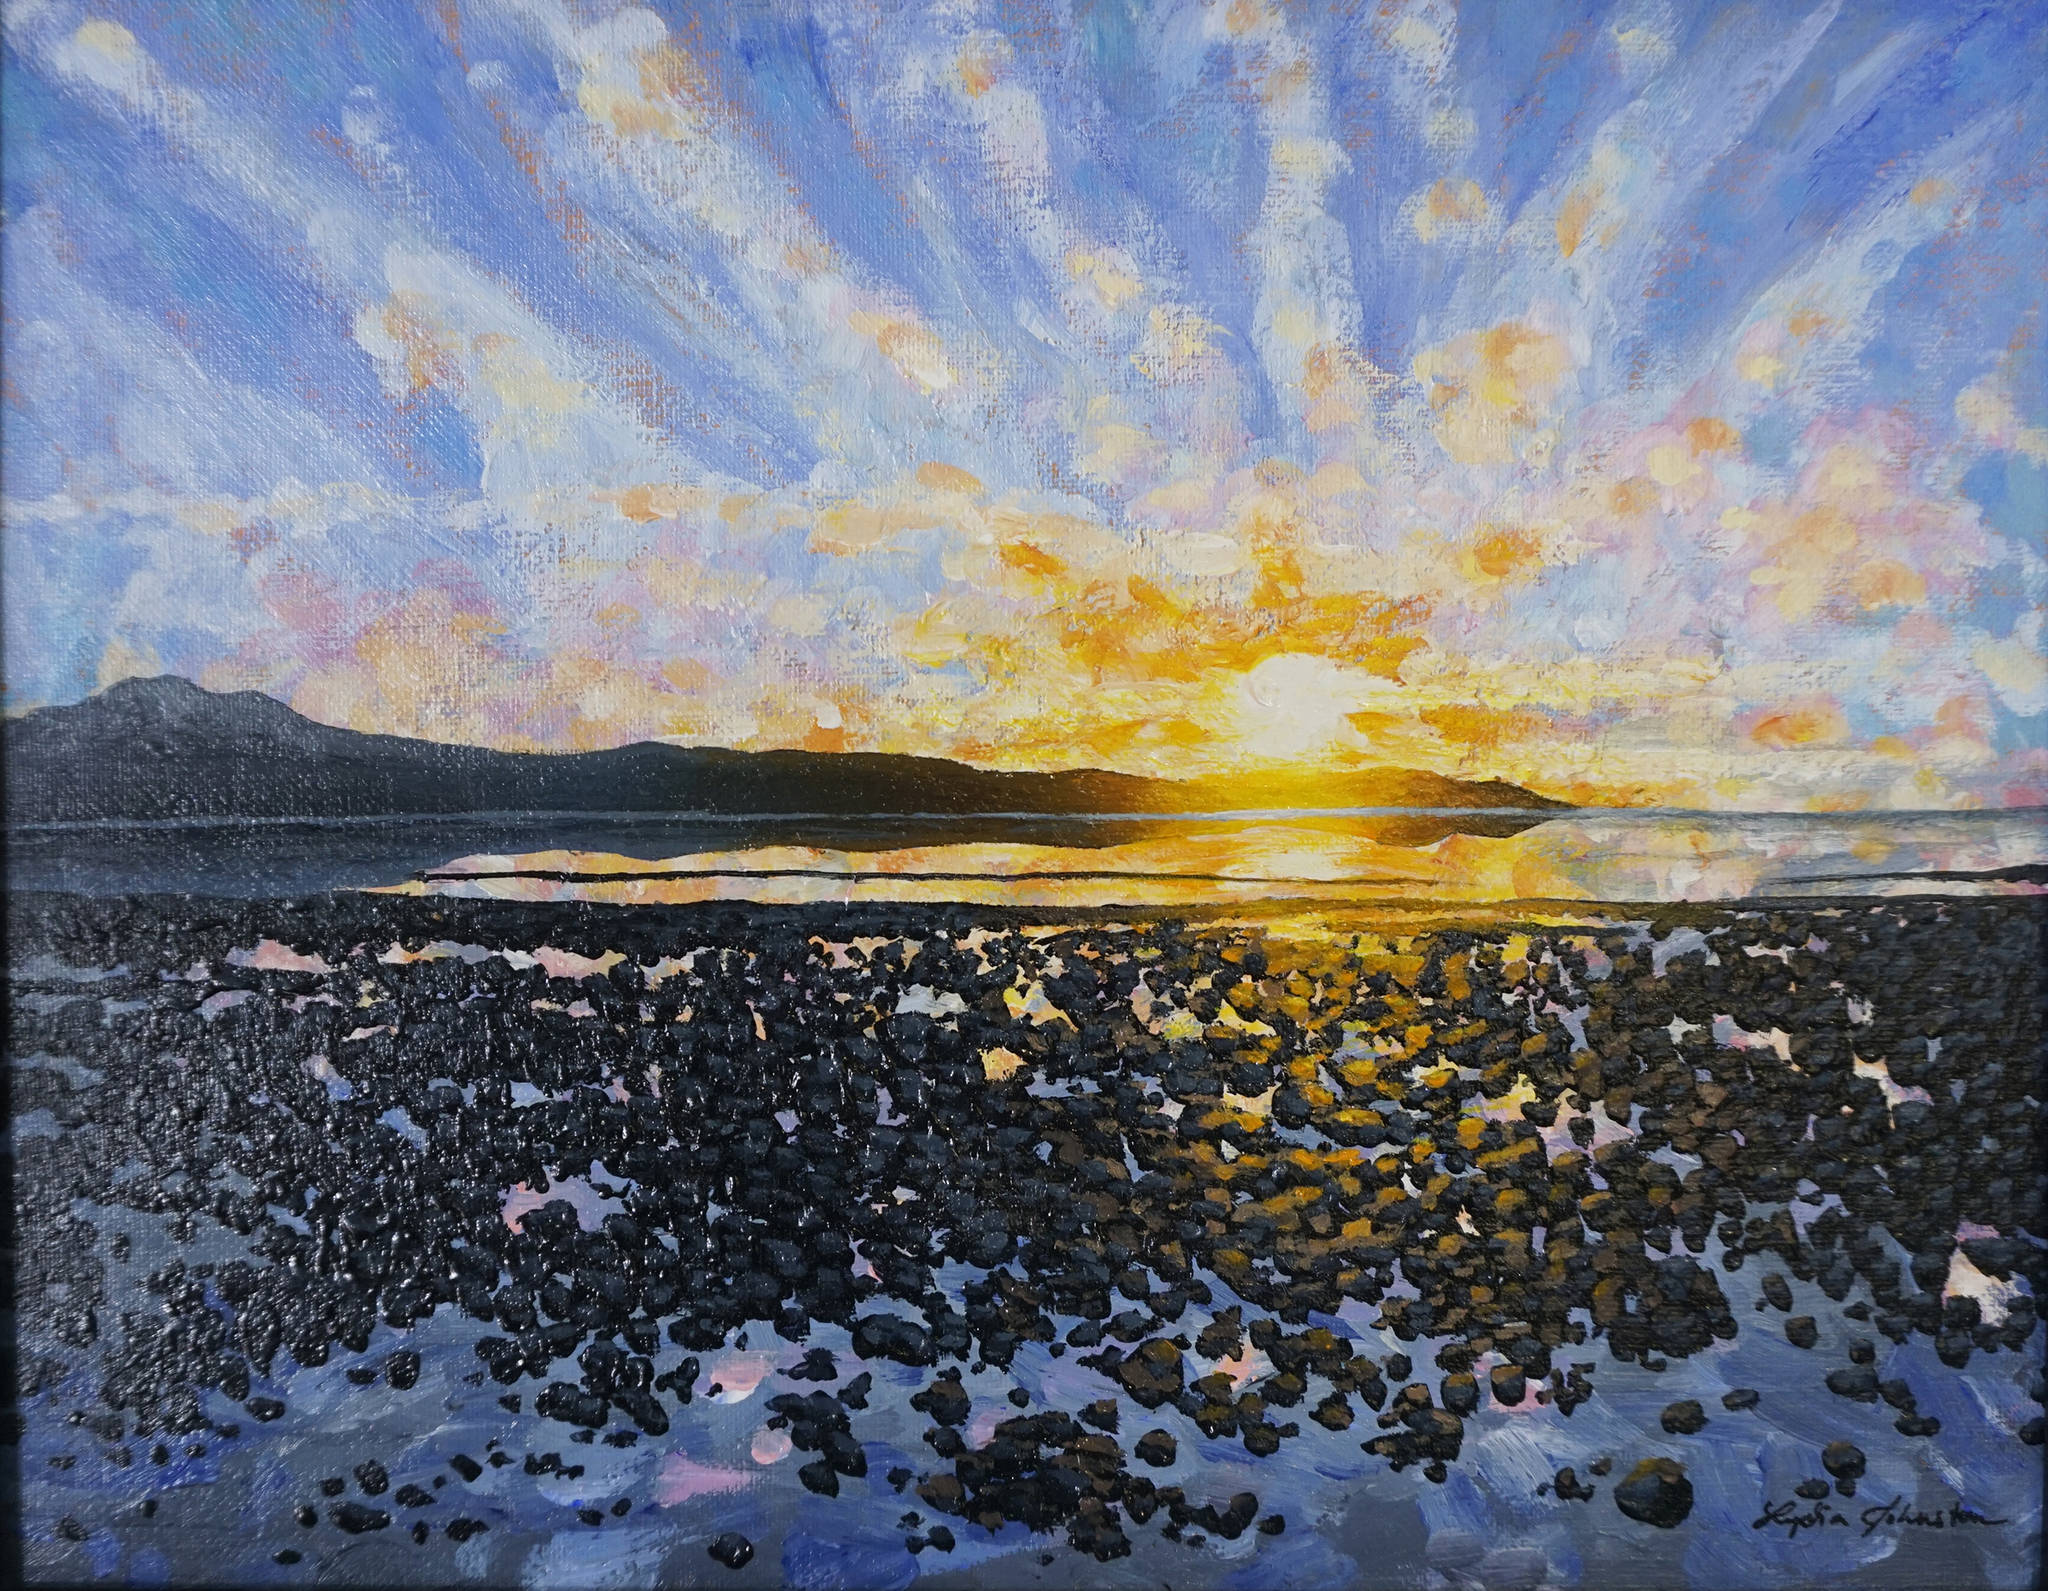 """Lydia Johnston's """"December,"""" one of the paintings from her show, """"Dynamic Lighting in Alaska,"""" that opened June 5, 2020, at Grace Ridge Brewery in Homer, Alaska. (Photo by Michael Armstrong/Homer News)"""